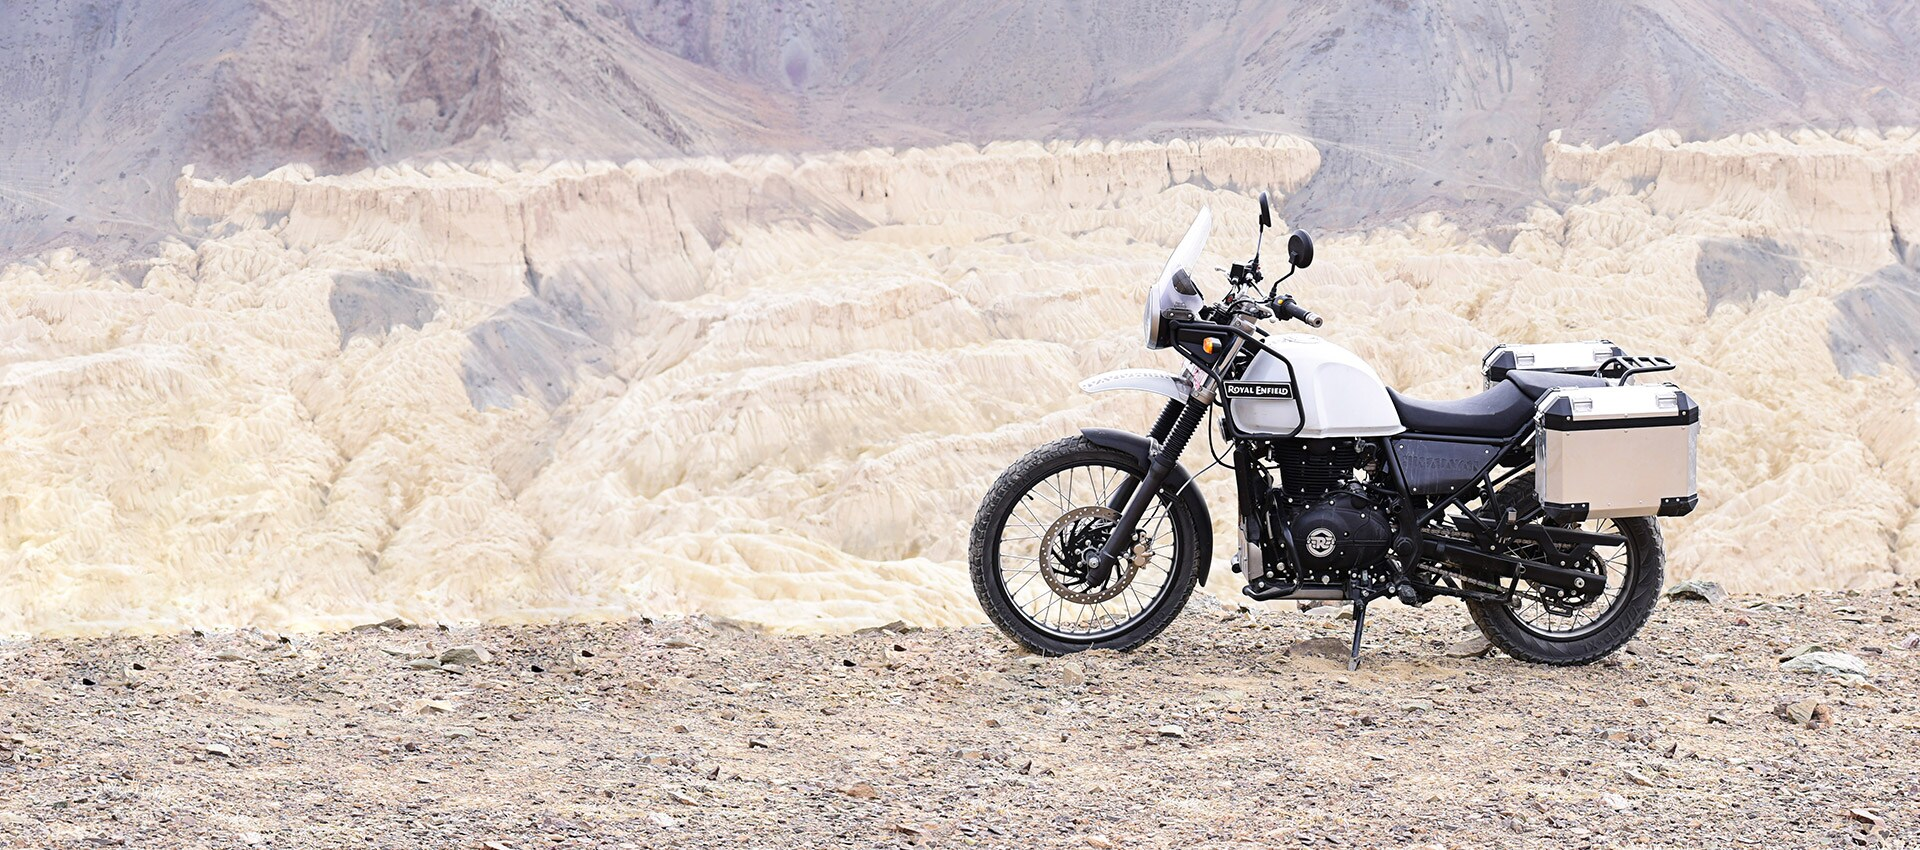 Himalayan - Steadfast Ride